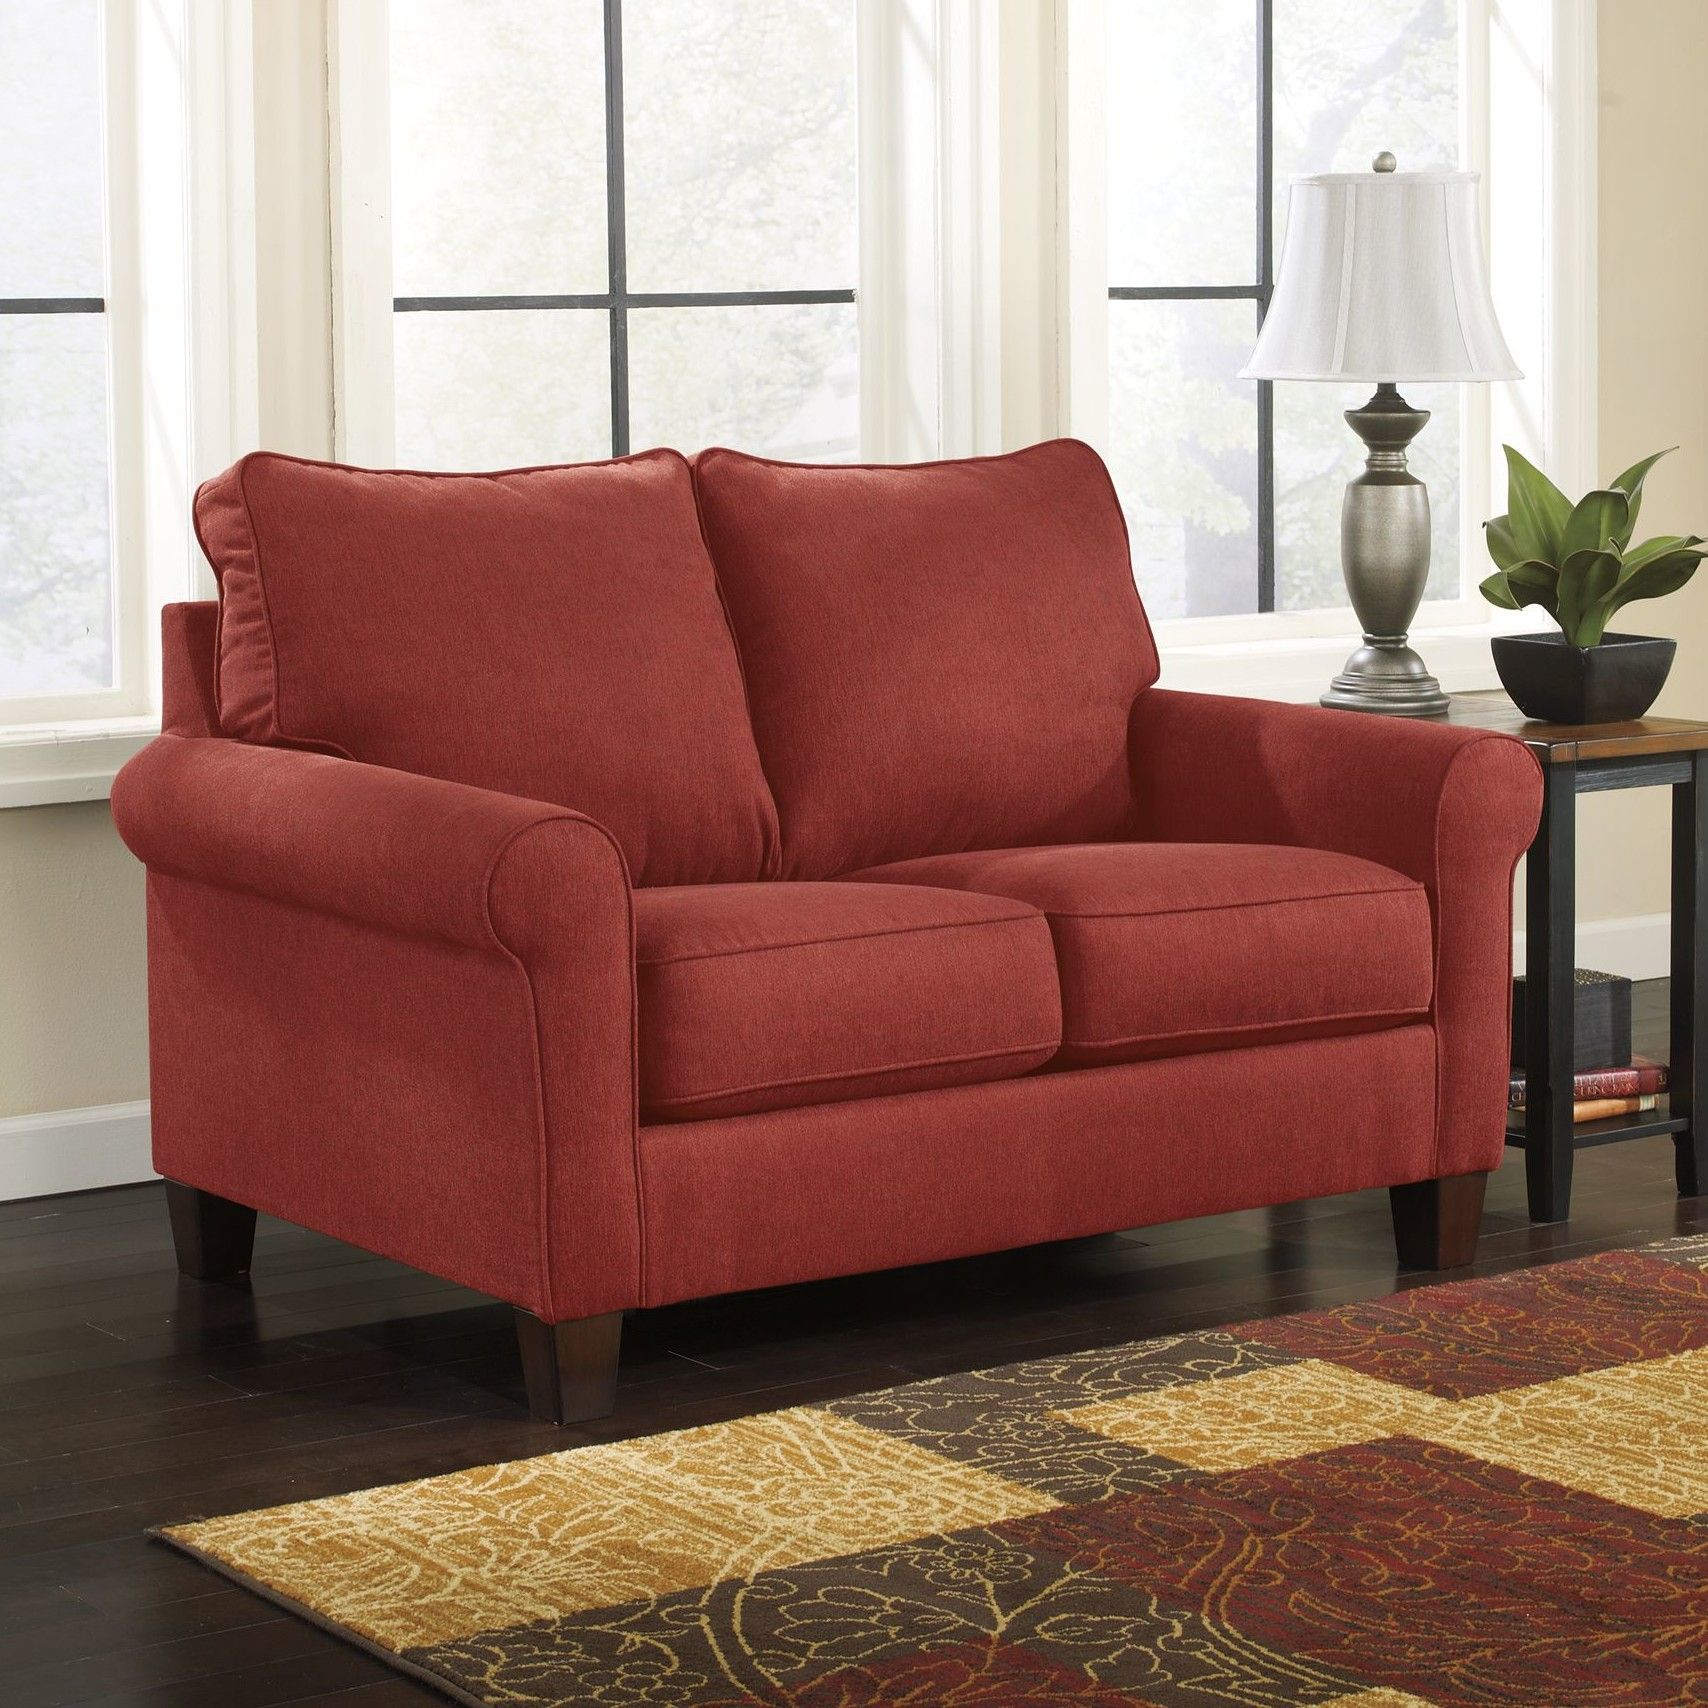 product loveseat lr home sleeper cindy loveseats crawford hydra bellingham luv